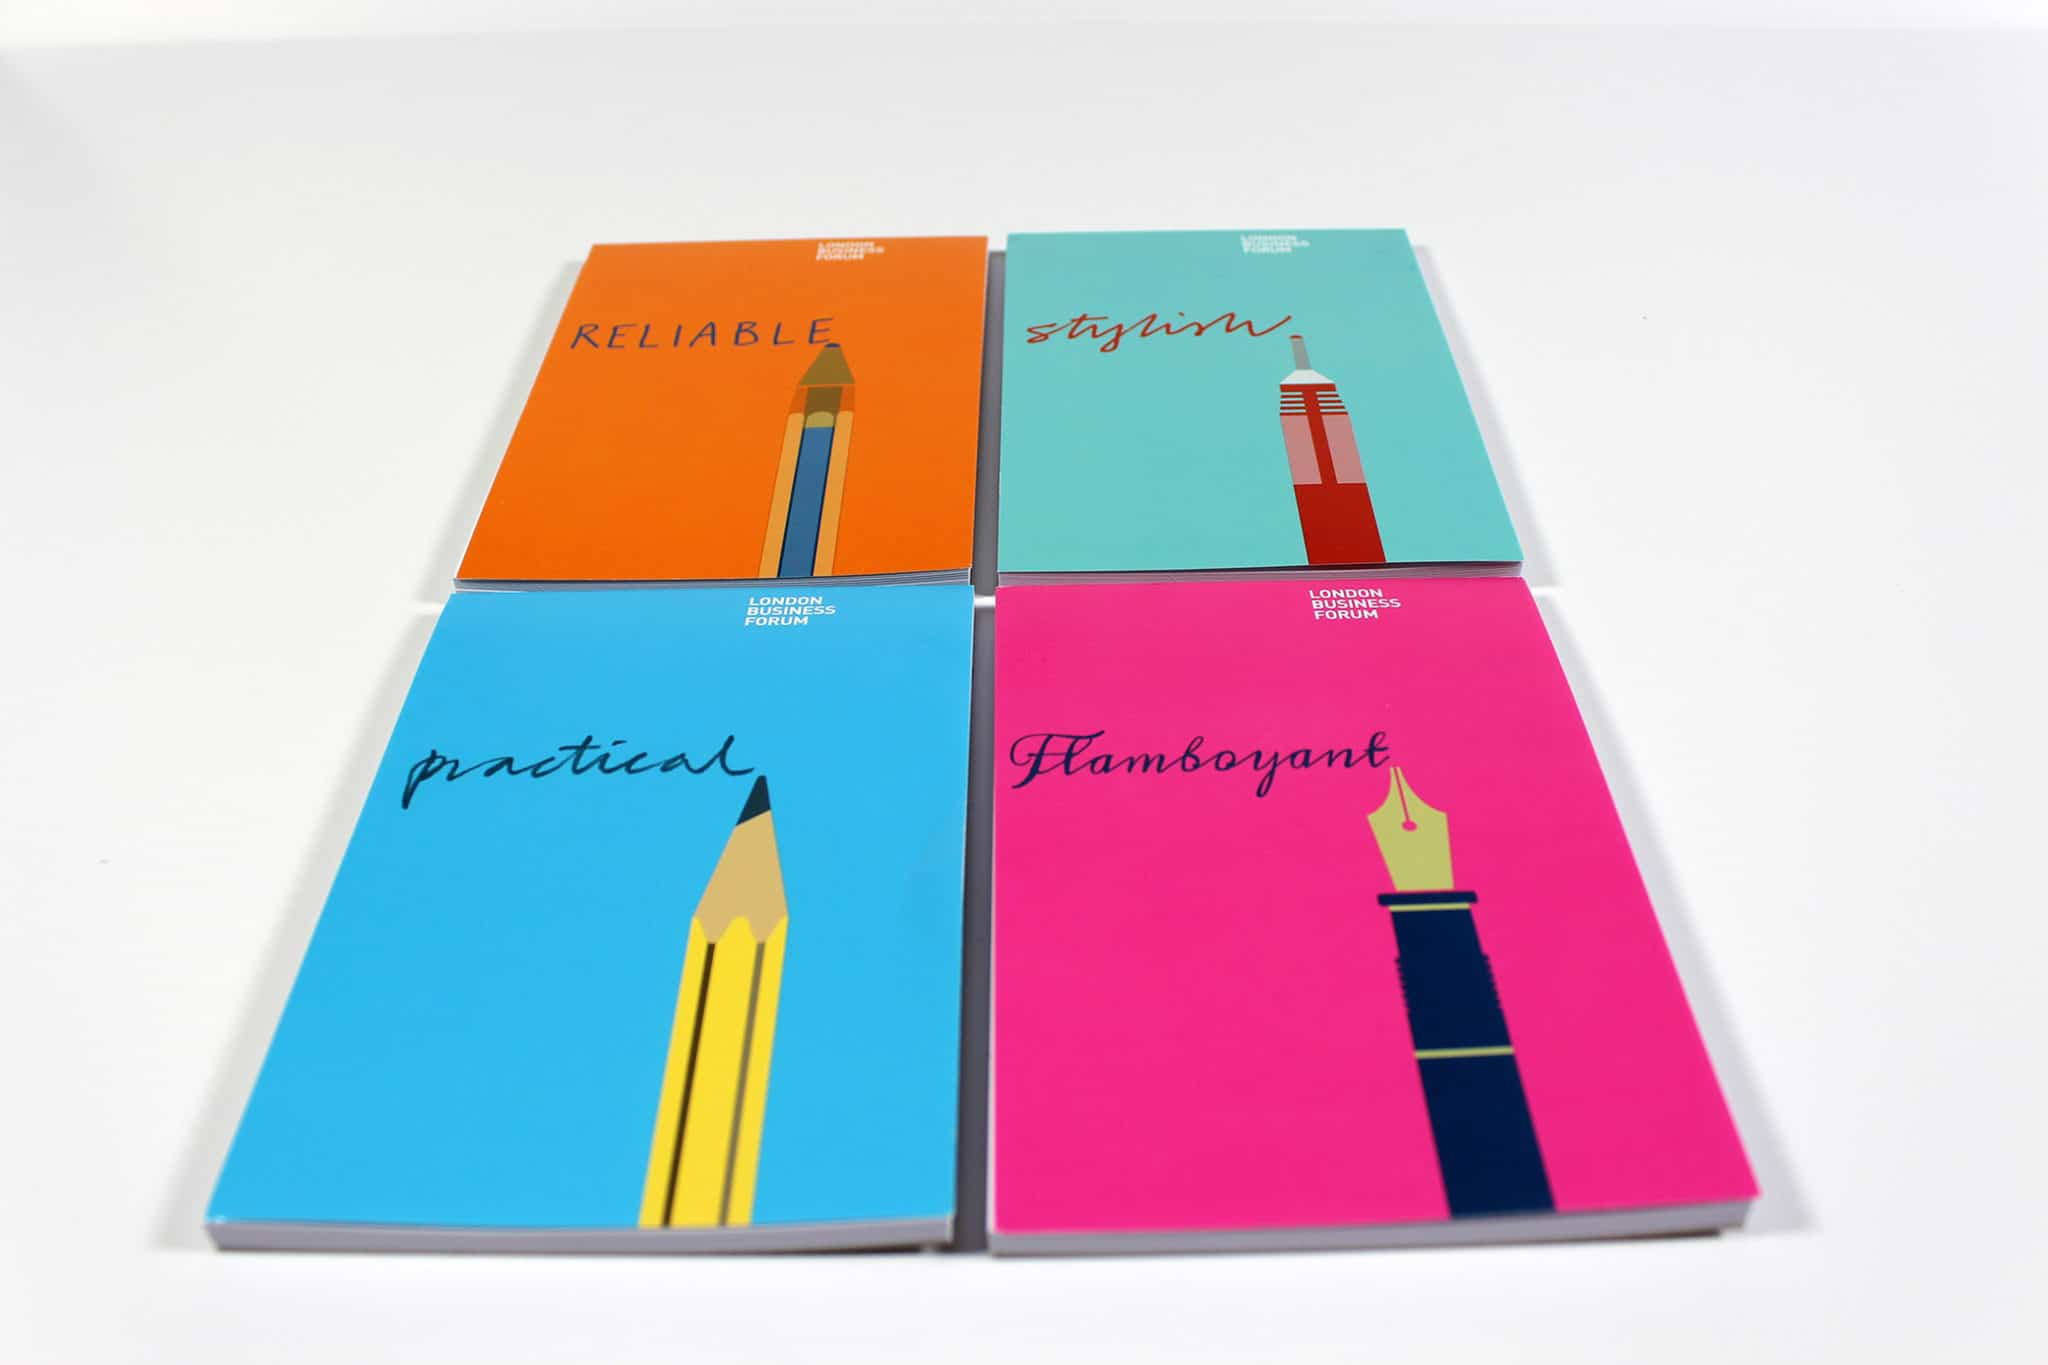 Colourful printed corporate note pads next to each other